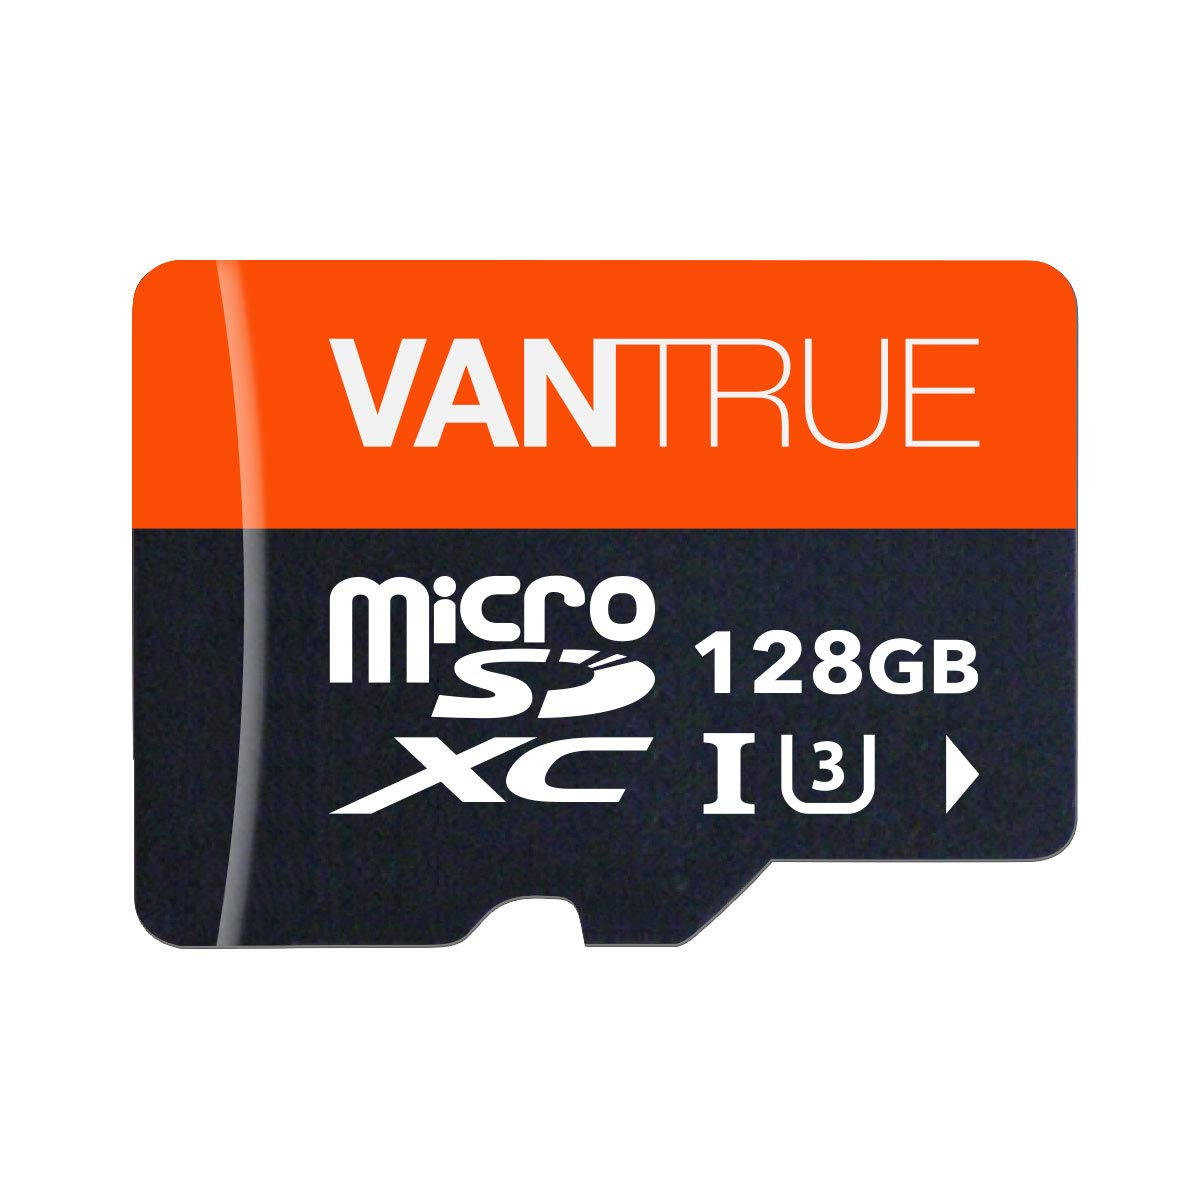 Vantrue 128GB U3 V30 Class 10 MicroSDXC UHS-I 4K UHD Video Monitoring Memory Card with Adapter for Dash Cams, Body Cams, Action Camera, Other Surveillance & Security Cams by VANTRUE